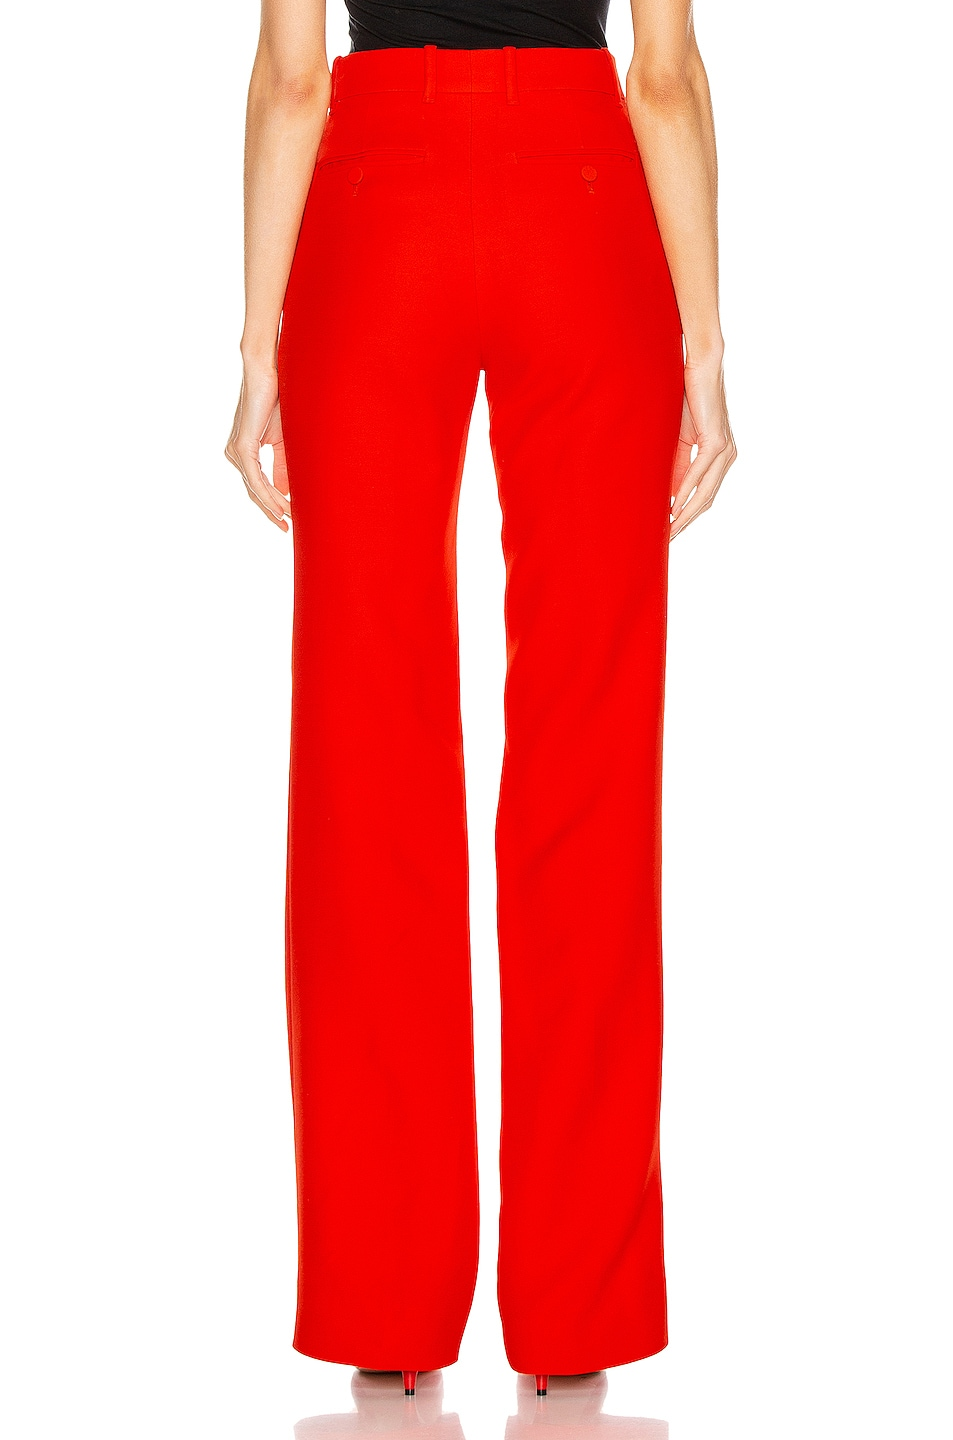 Image 3 of Gucci Flare Pant in Pomegrante Flower